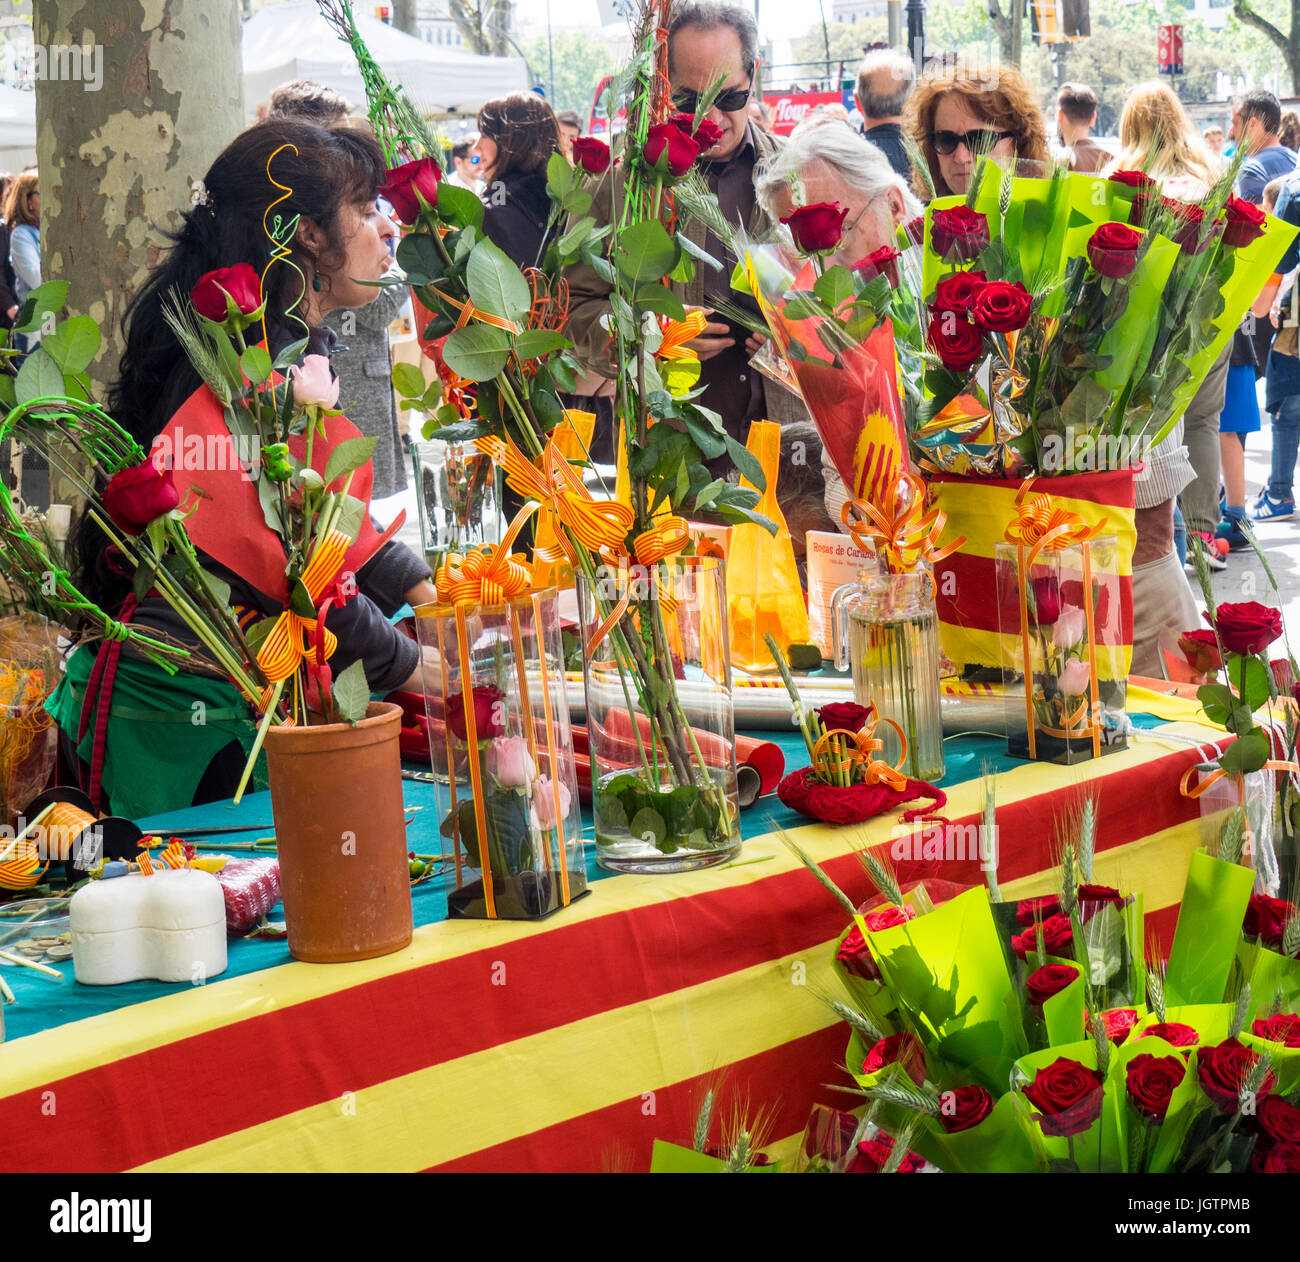 a-woman-selling-red-roses-on-sant-jordi-day-barcelona-spain-JGTPMB.jpg